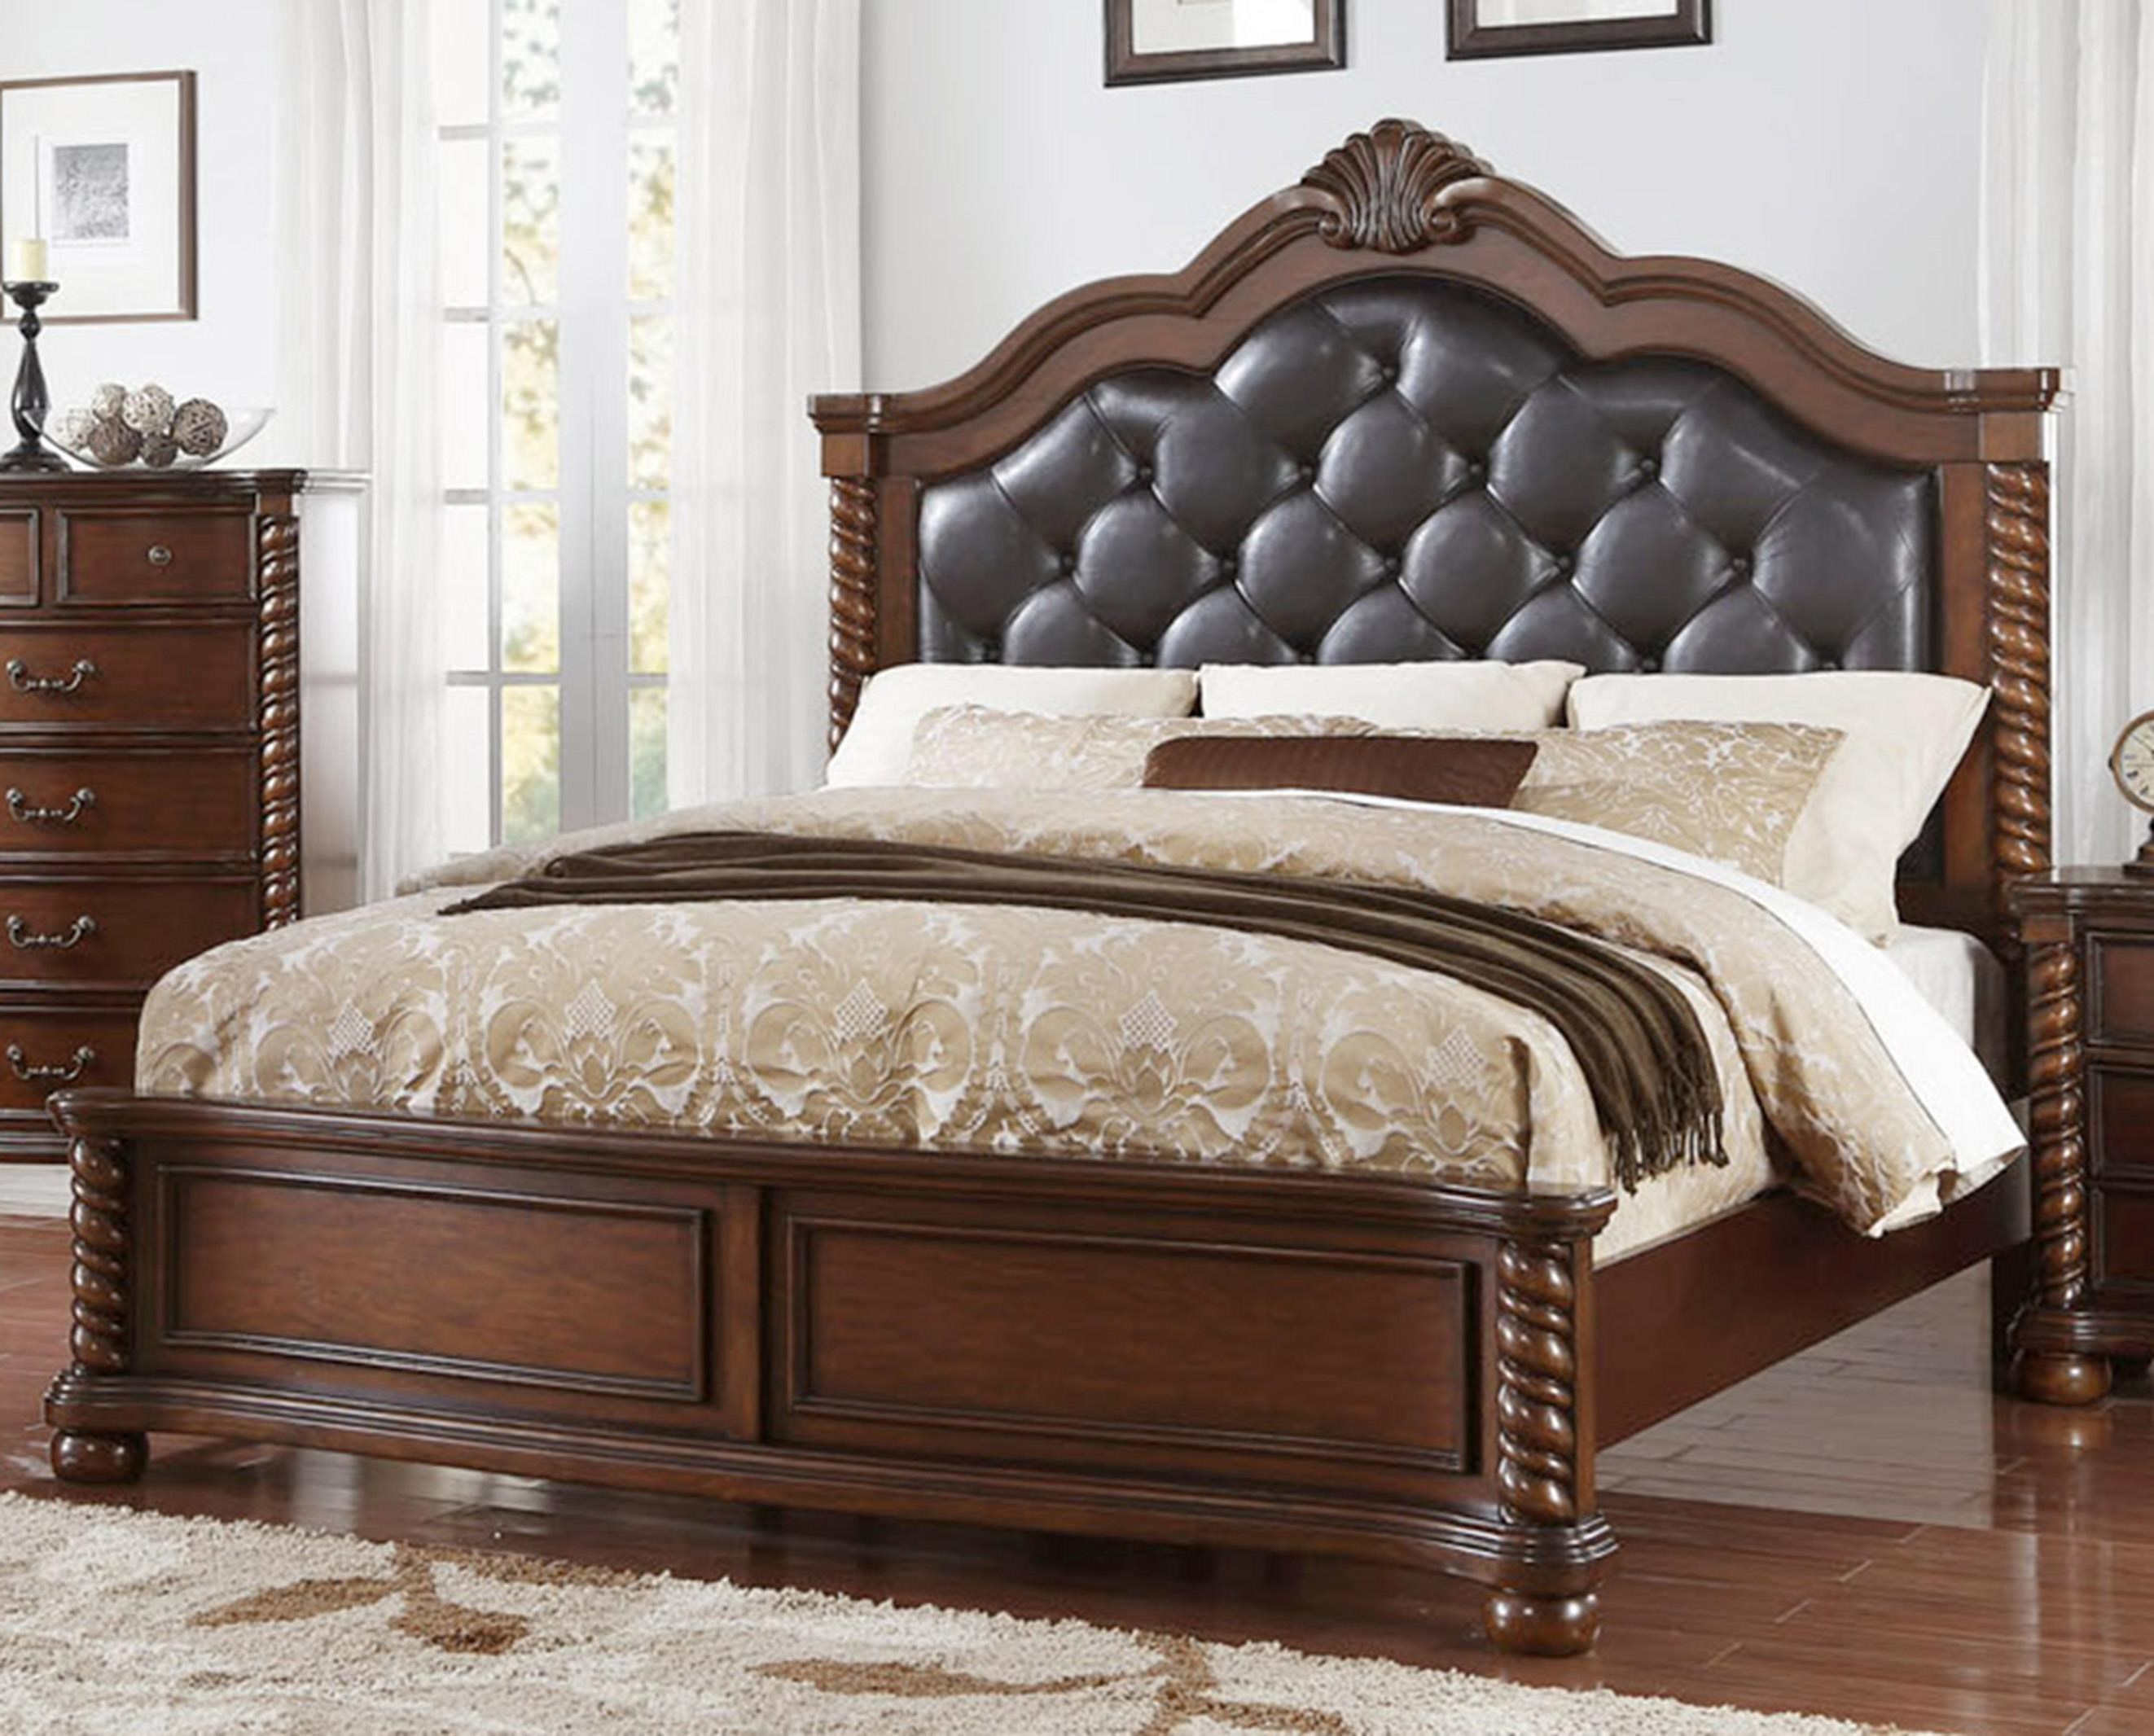 Queen Bed with Diamond-Tufted Headboard